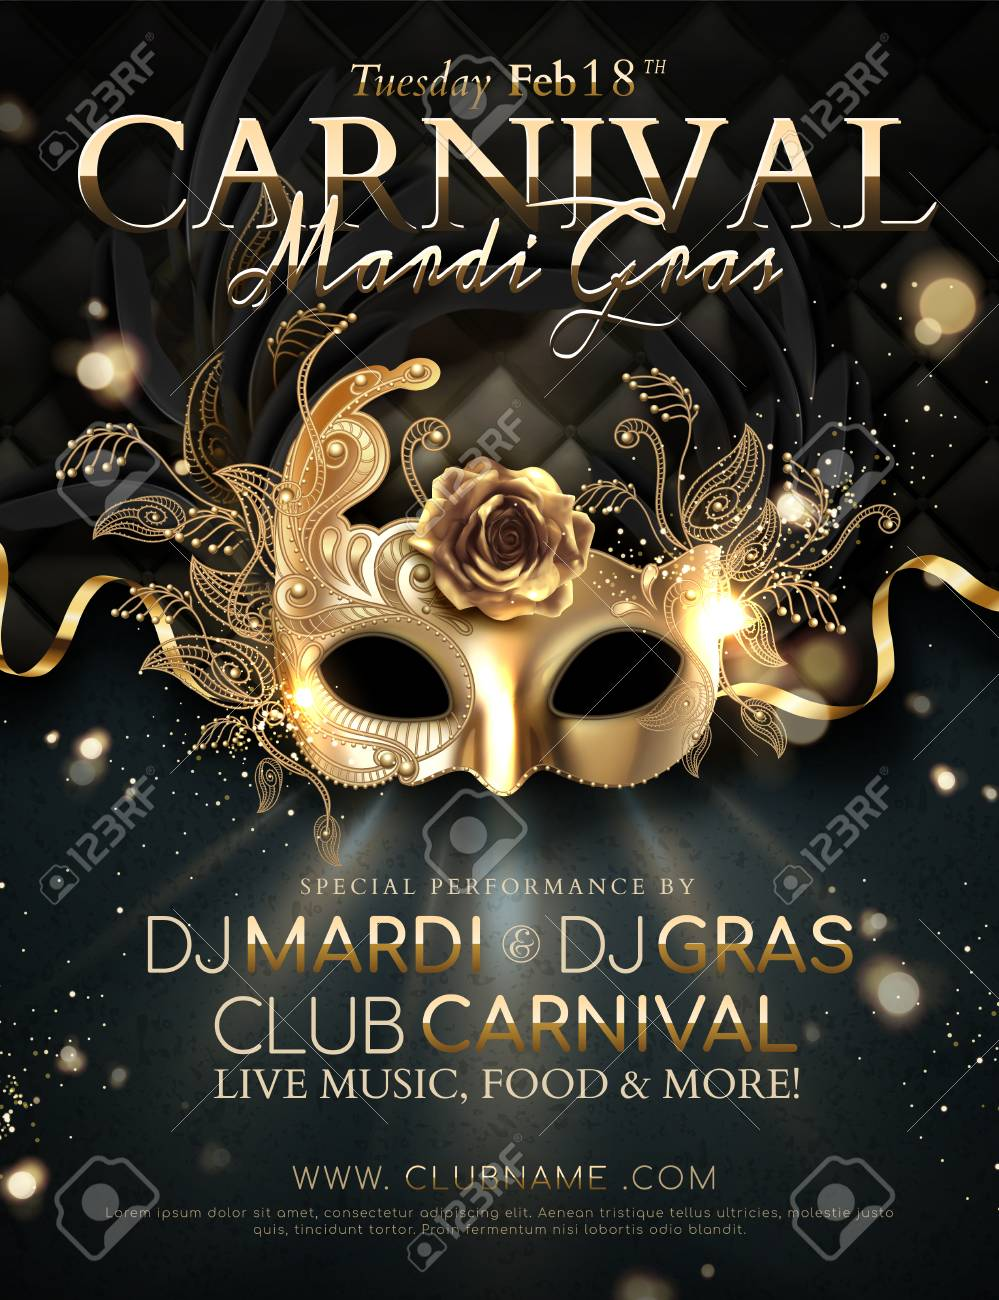 Mardi gras carnival poster design with golden mask and ribbons in 3d illustration - 115486718